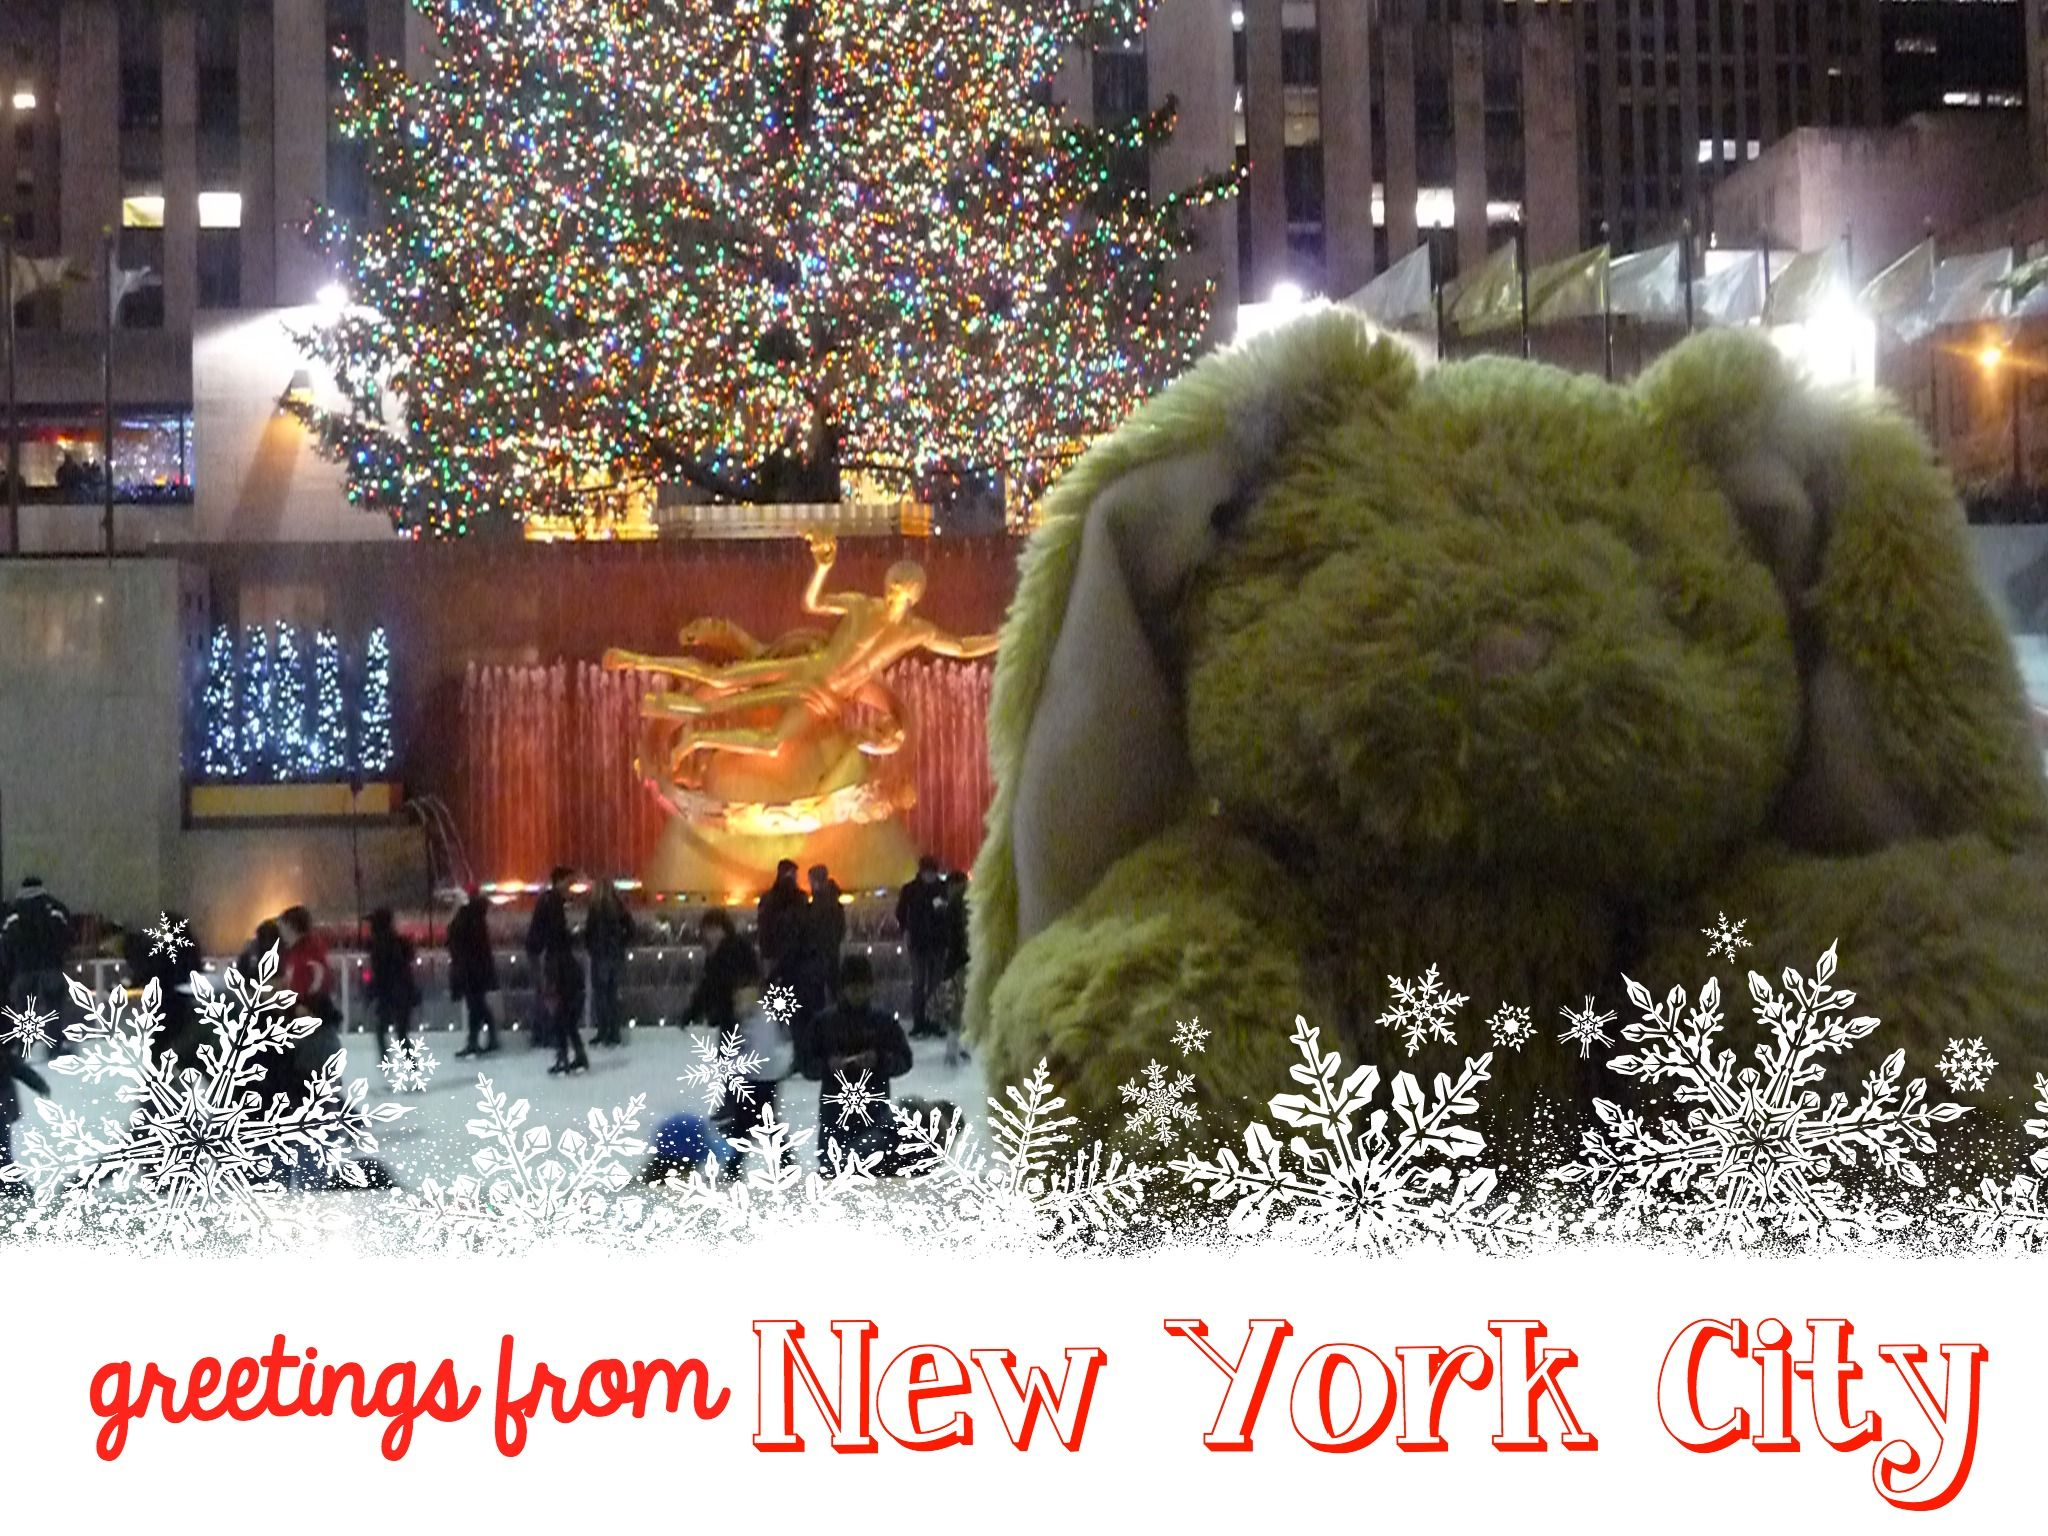 1000 Images About Christmas In NYC On Pinterest